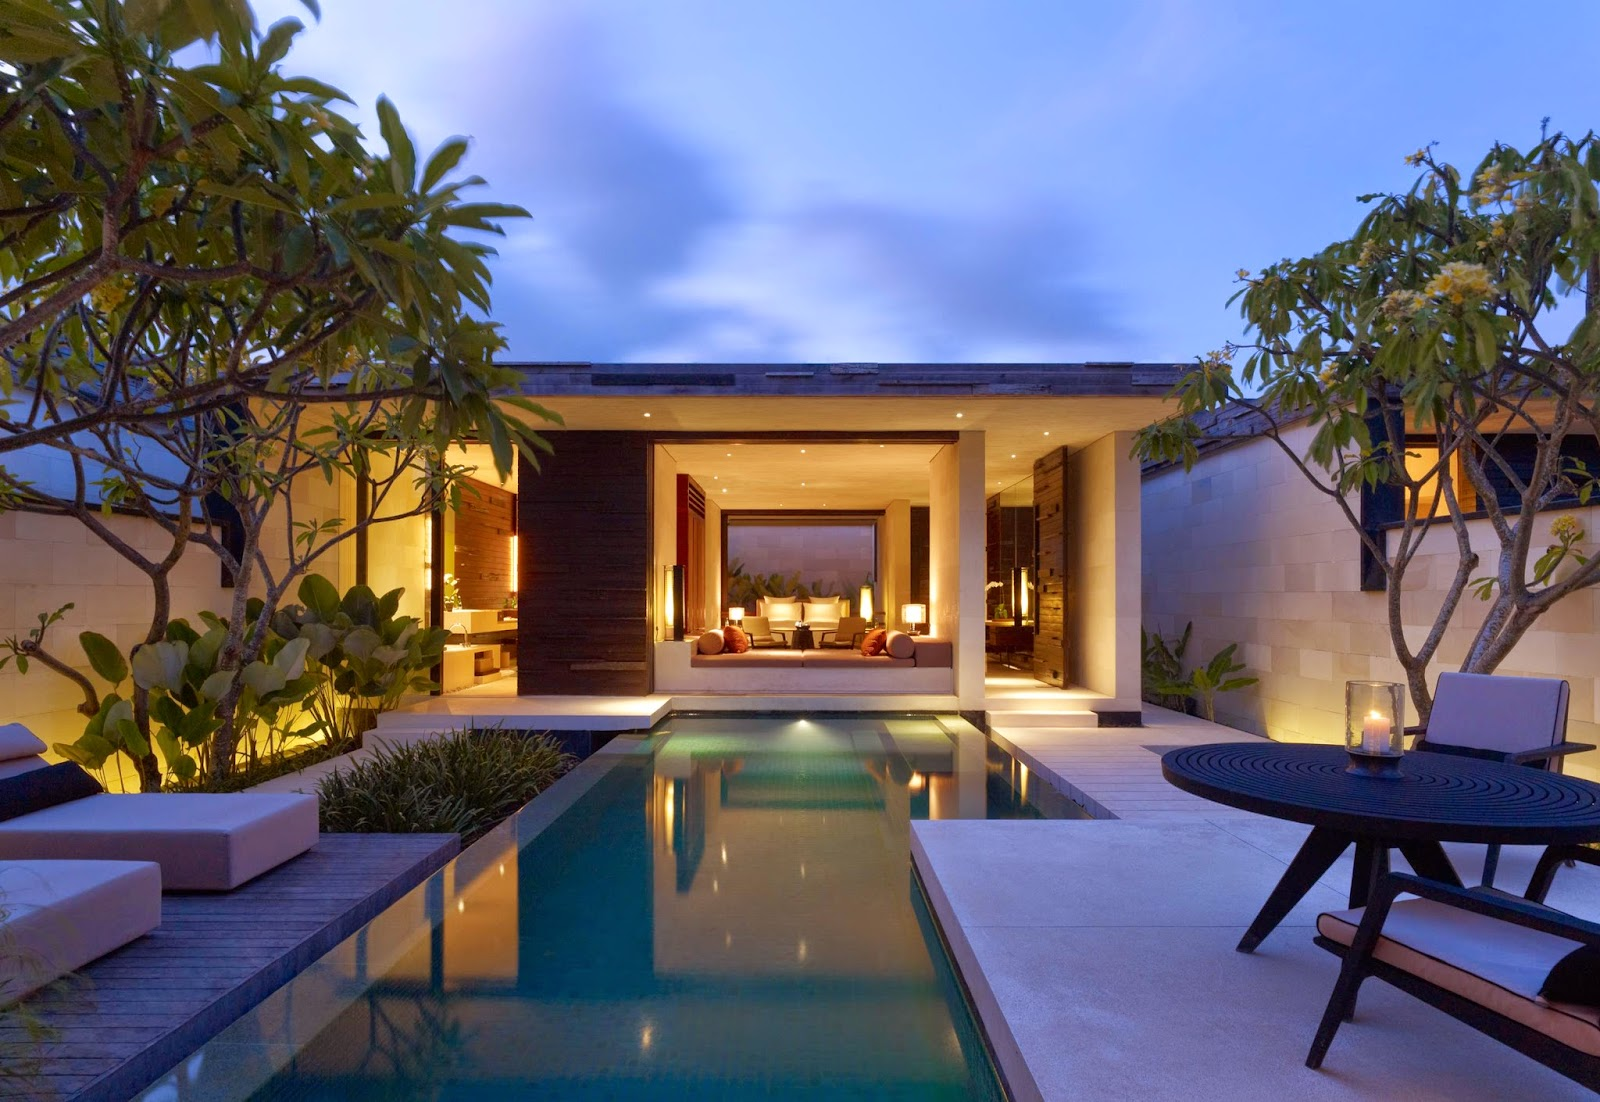 Passion for luxury passion4luxury 39 s 3 most romantic hotels for Luxury romantic hotels